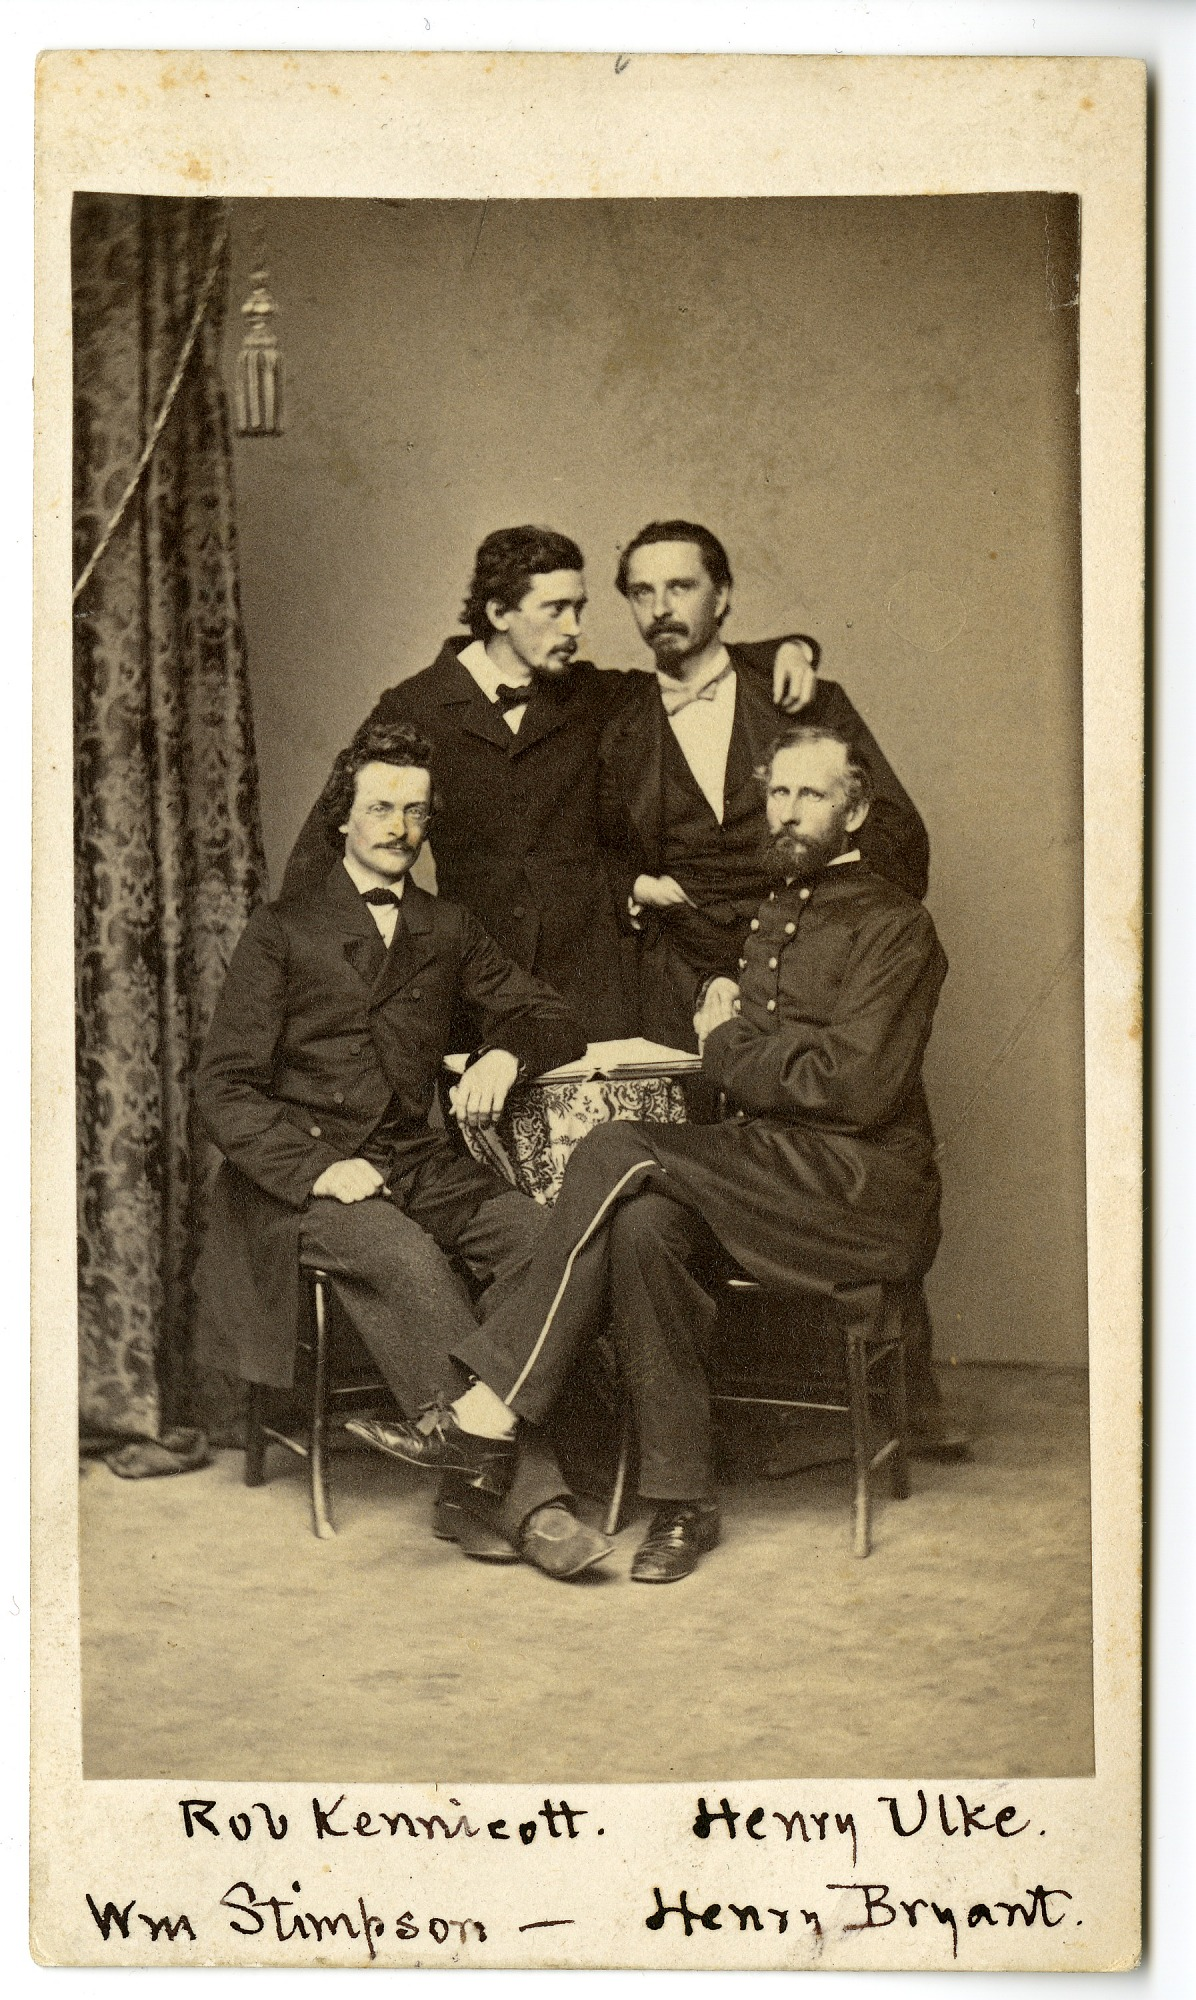 Members of the Megatherium Club: Robert Kennicott, Henry Ulke, Henry Bryant and William Stimpson.